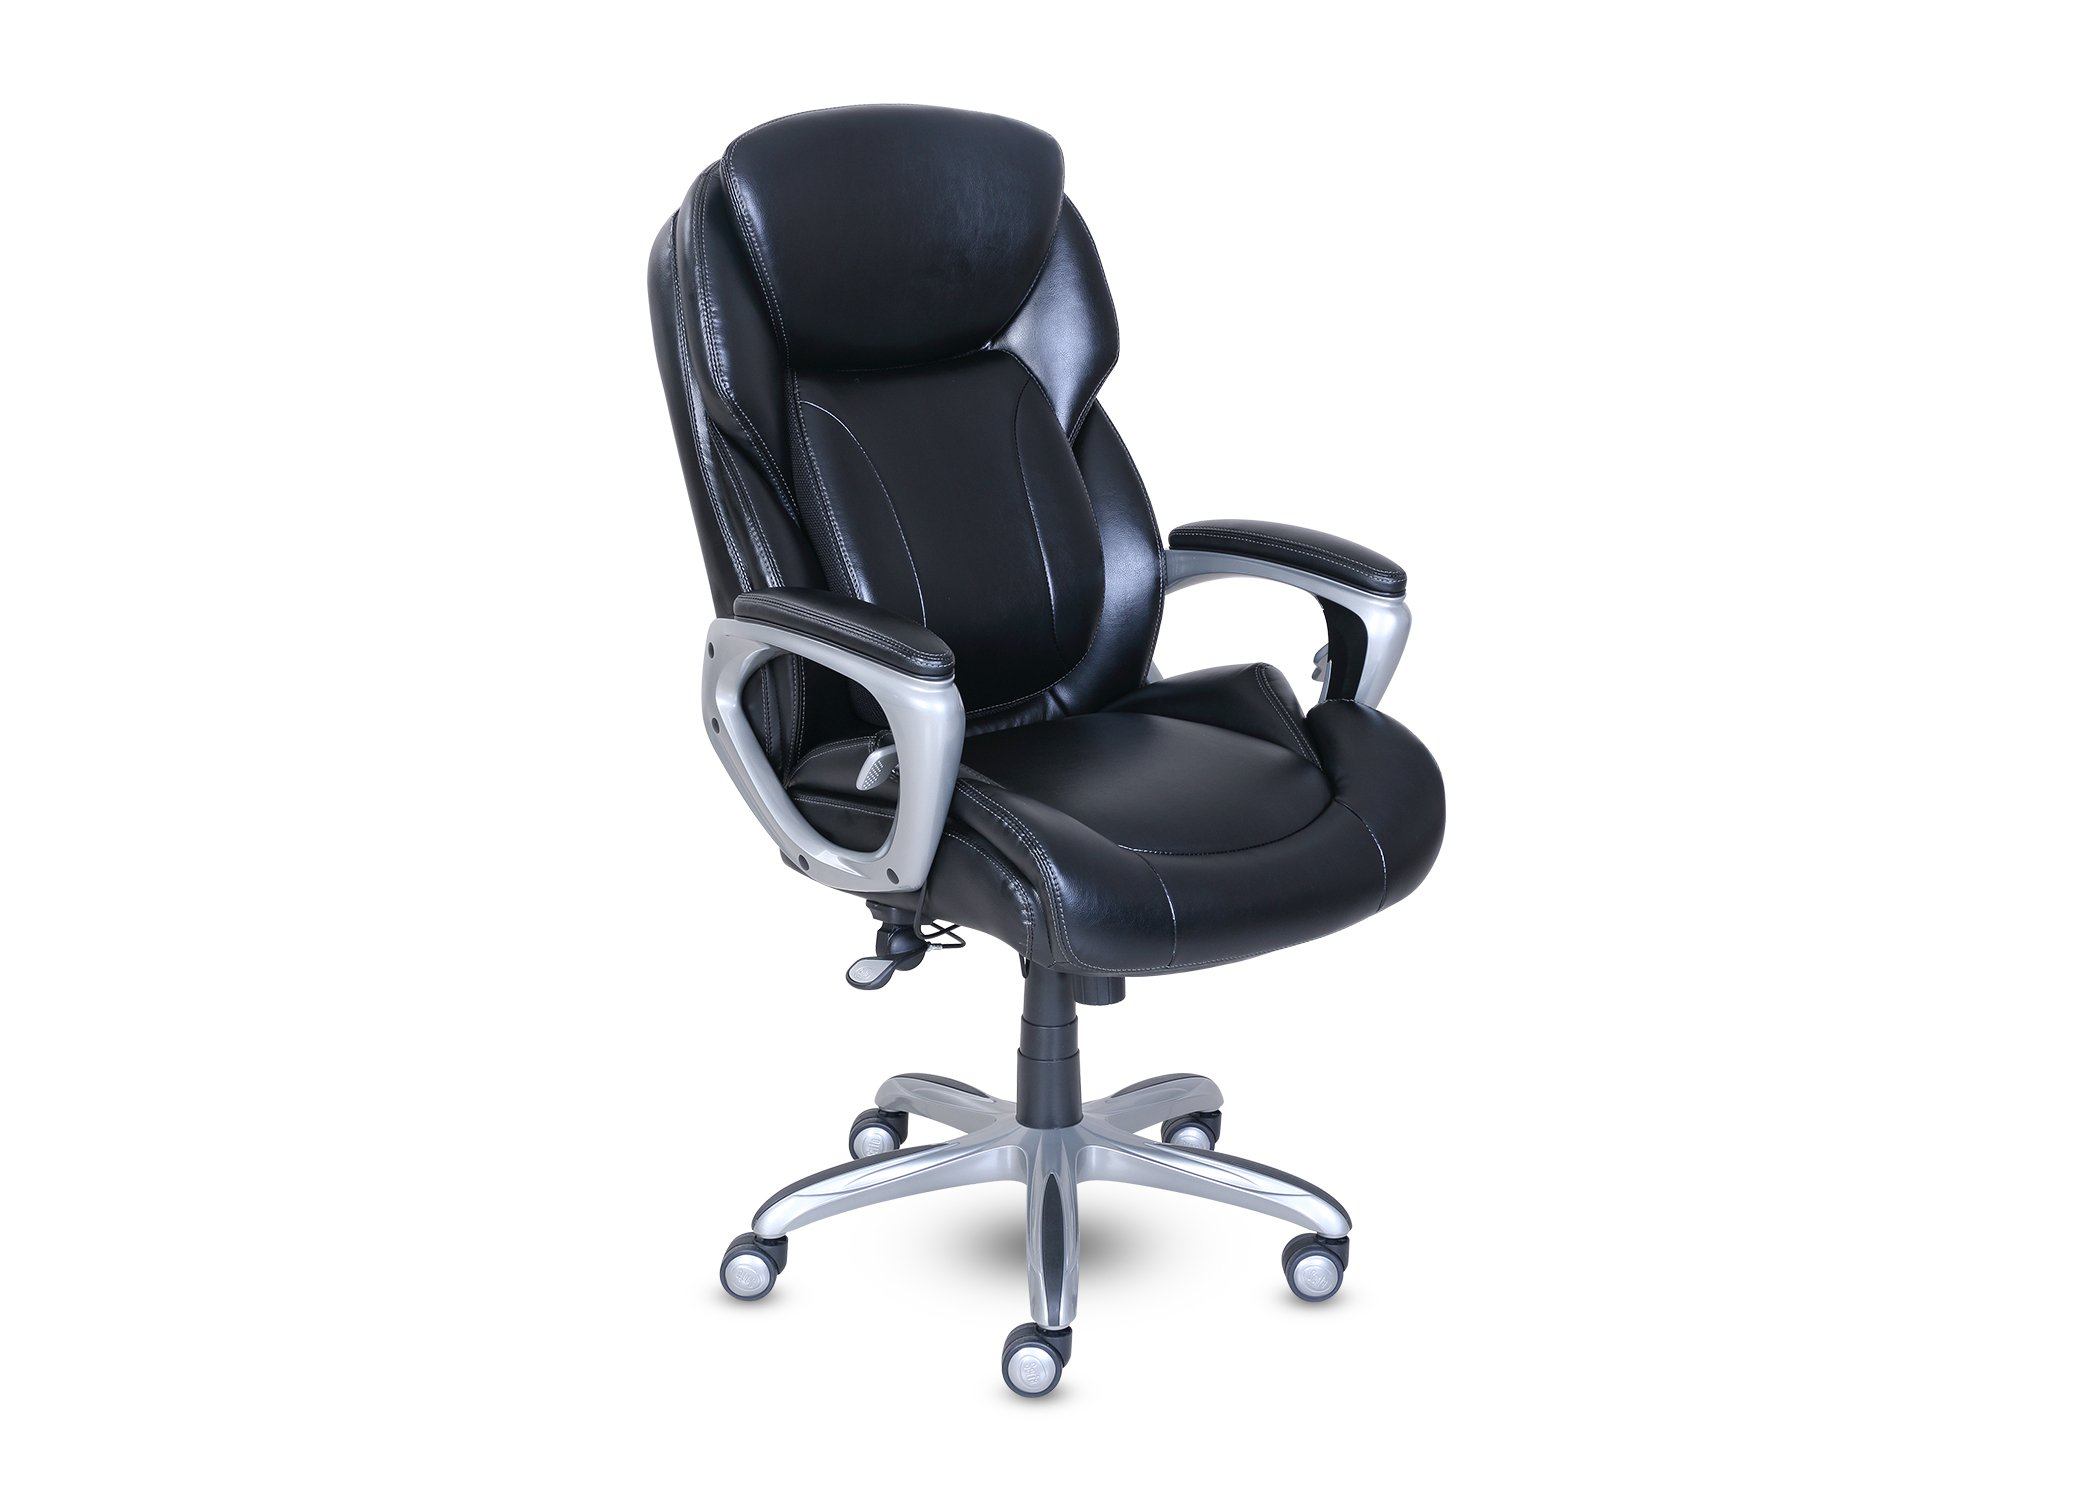 Serta Works My Fit Executive Office Chair with Tailored Reach, Brainstorm Black Bonded Leather